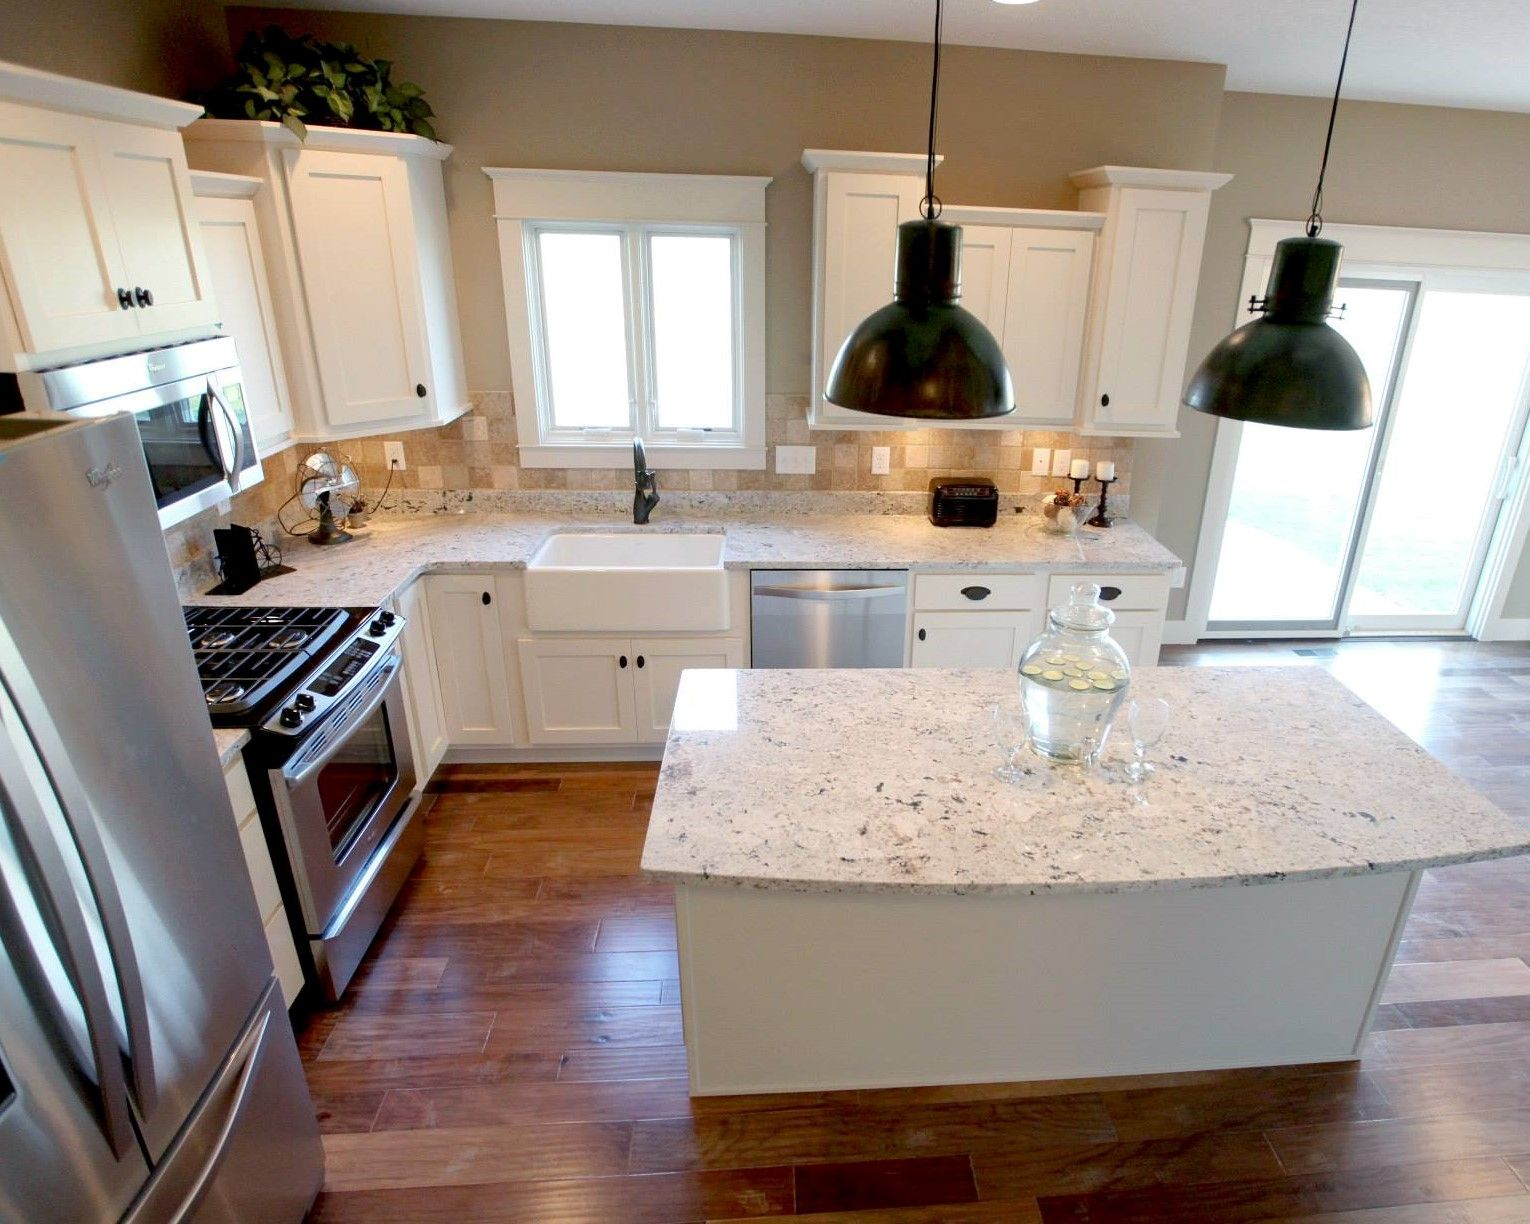 L Shaped #kitchen Layout With An #arched Overhang On The #island